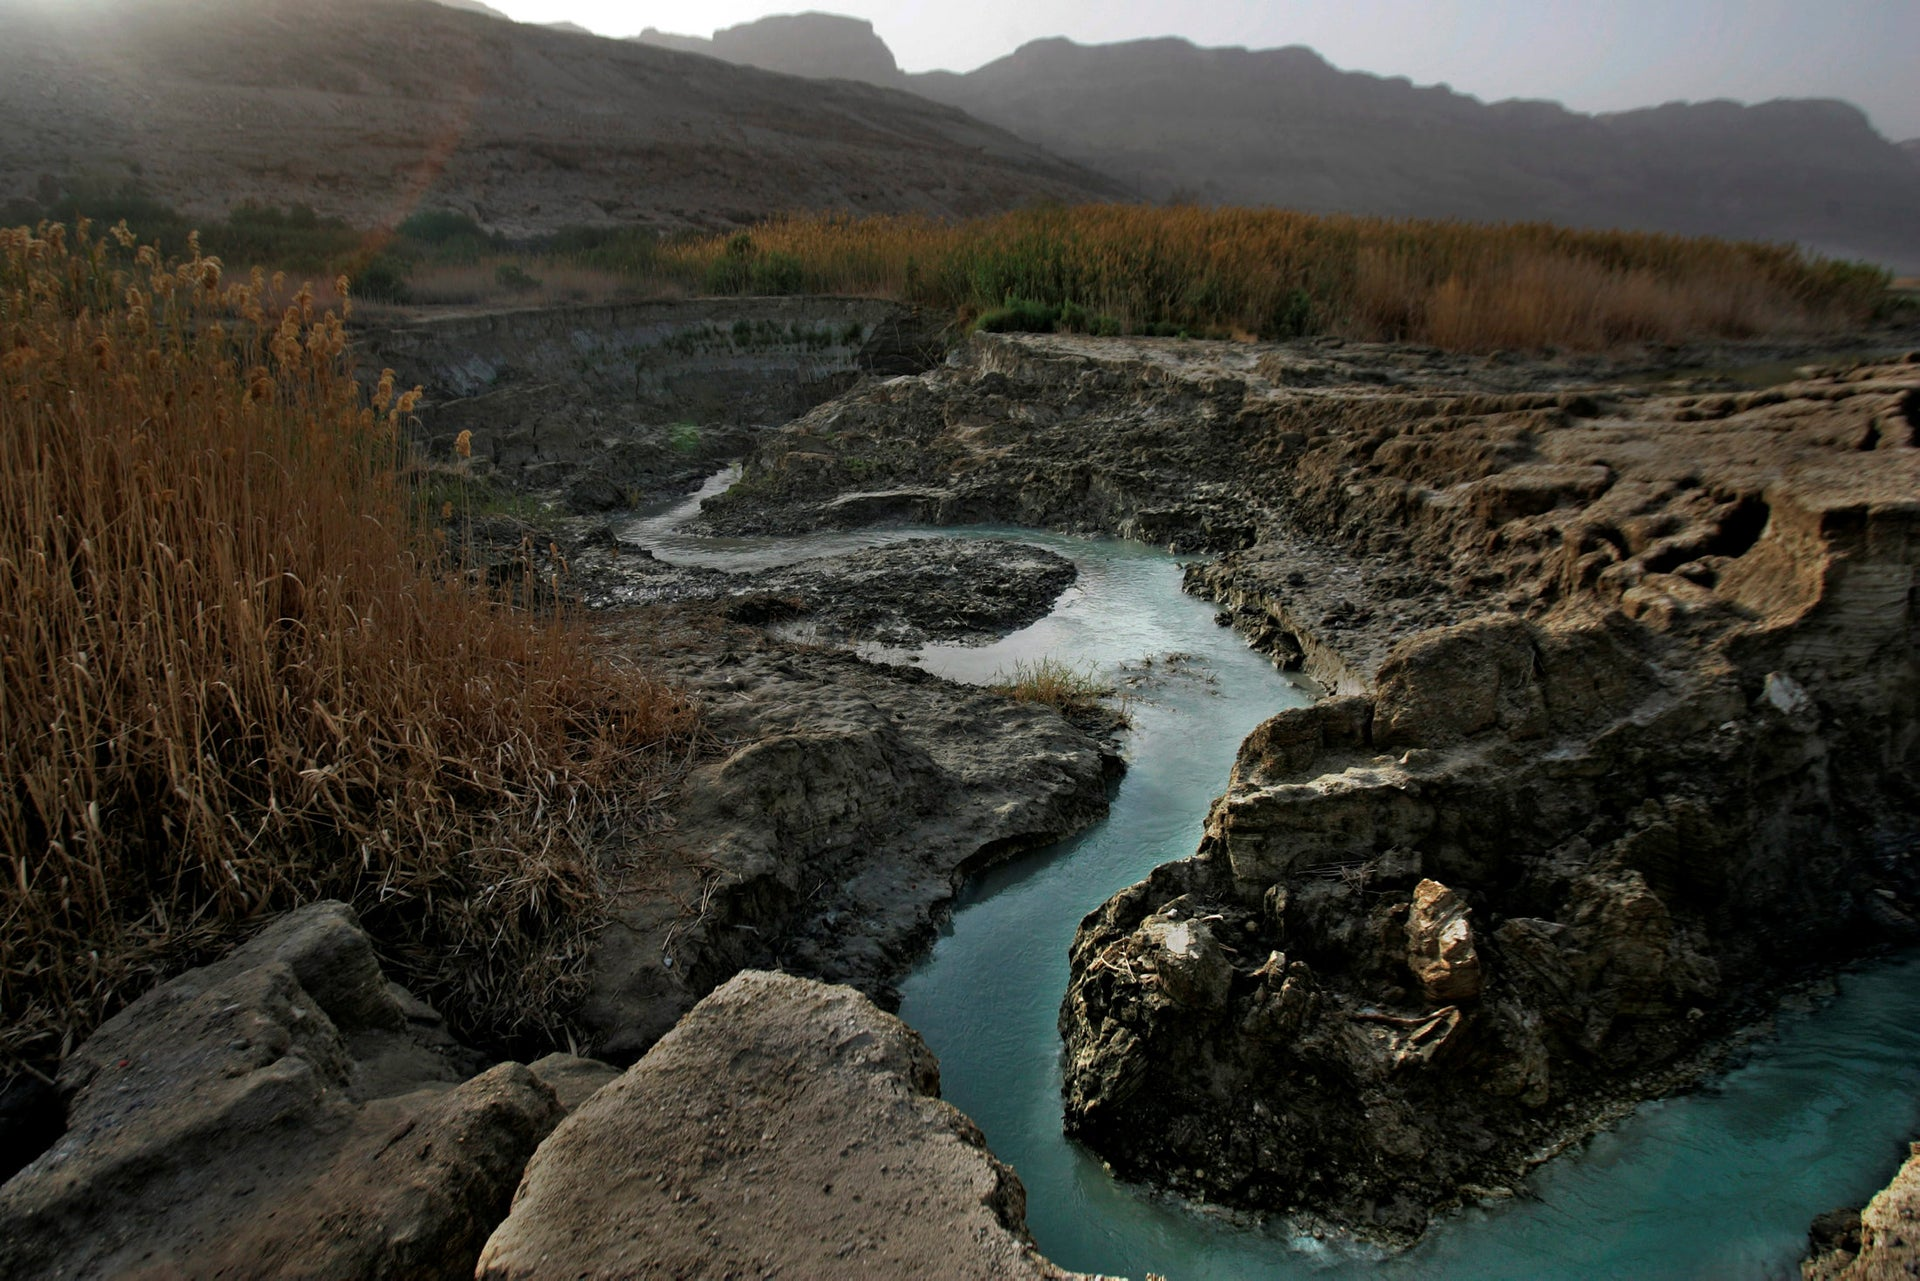 The water sources to the Dead Sea have dramatically diminshed